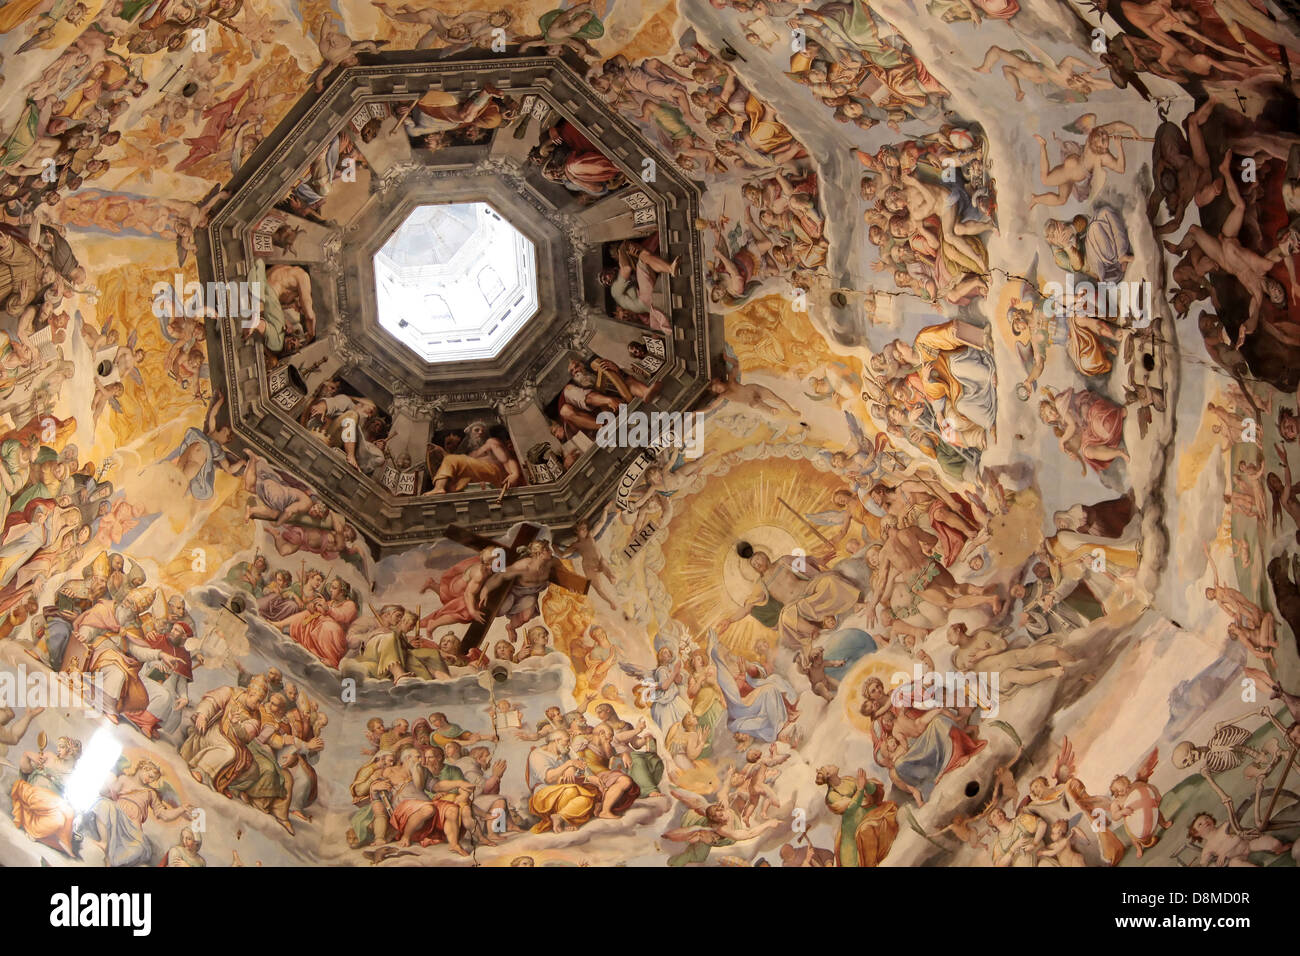 Dome Of The Cathedral Santa Maria Del Fiore In Florence Stock Photo Alamy